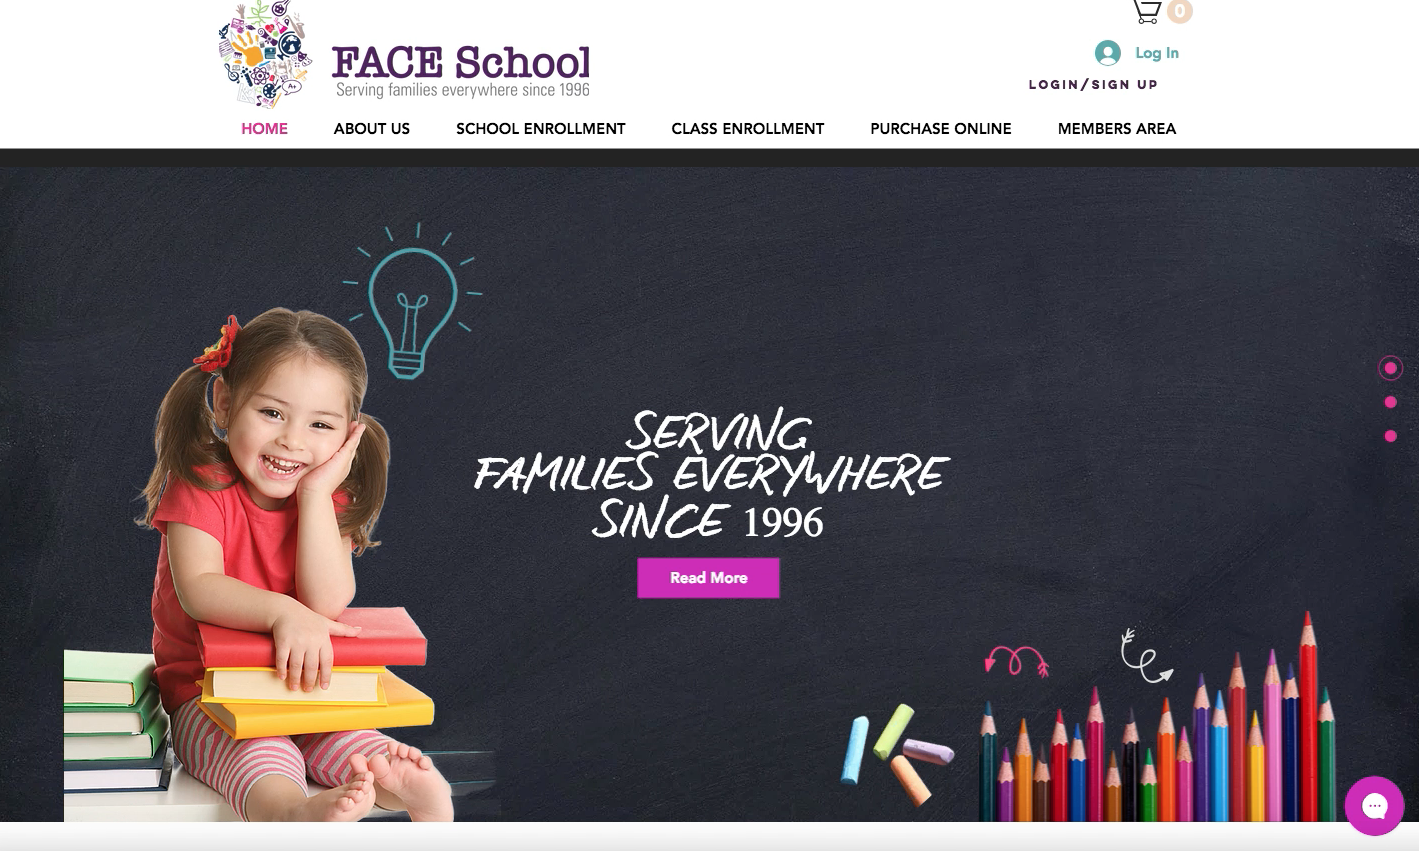 faceschool website